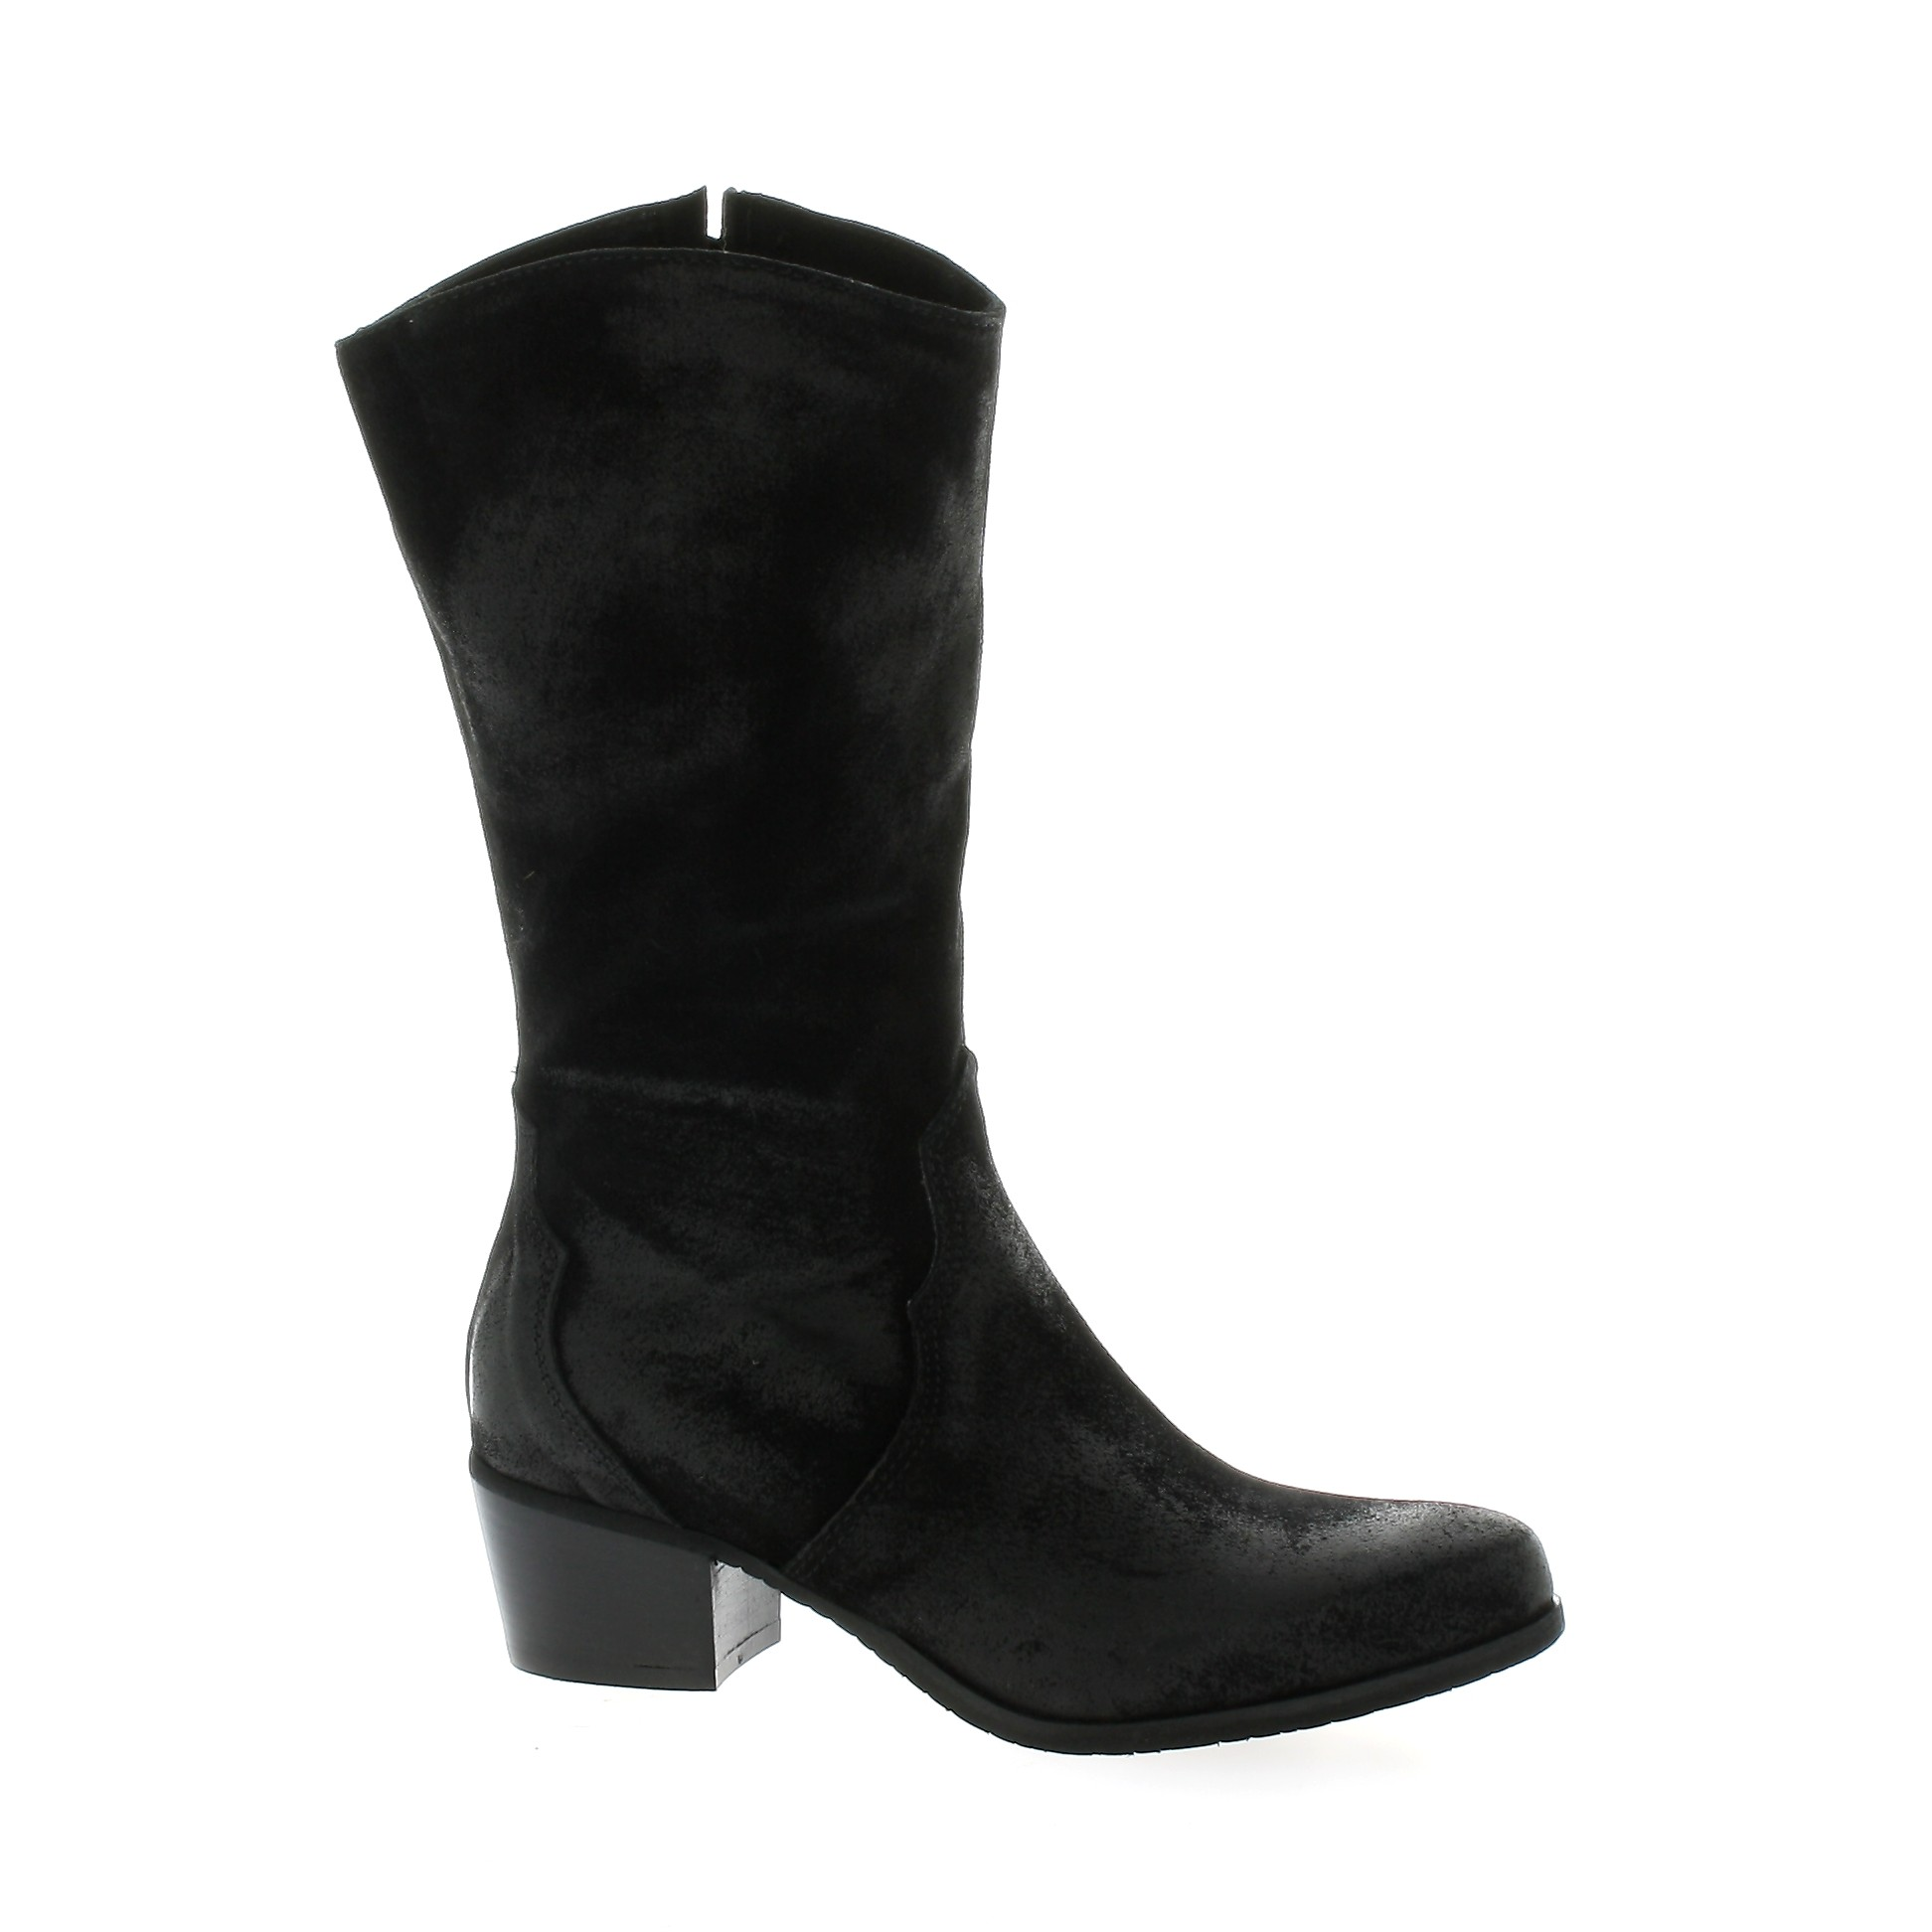 Pao Bottes Bottes cuir velours Pao soldes nmTnQL